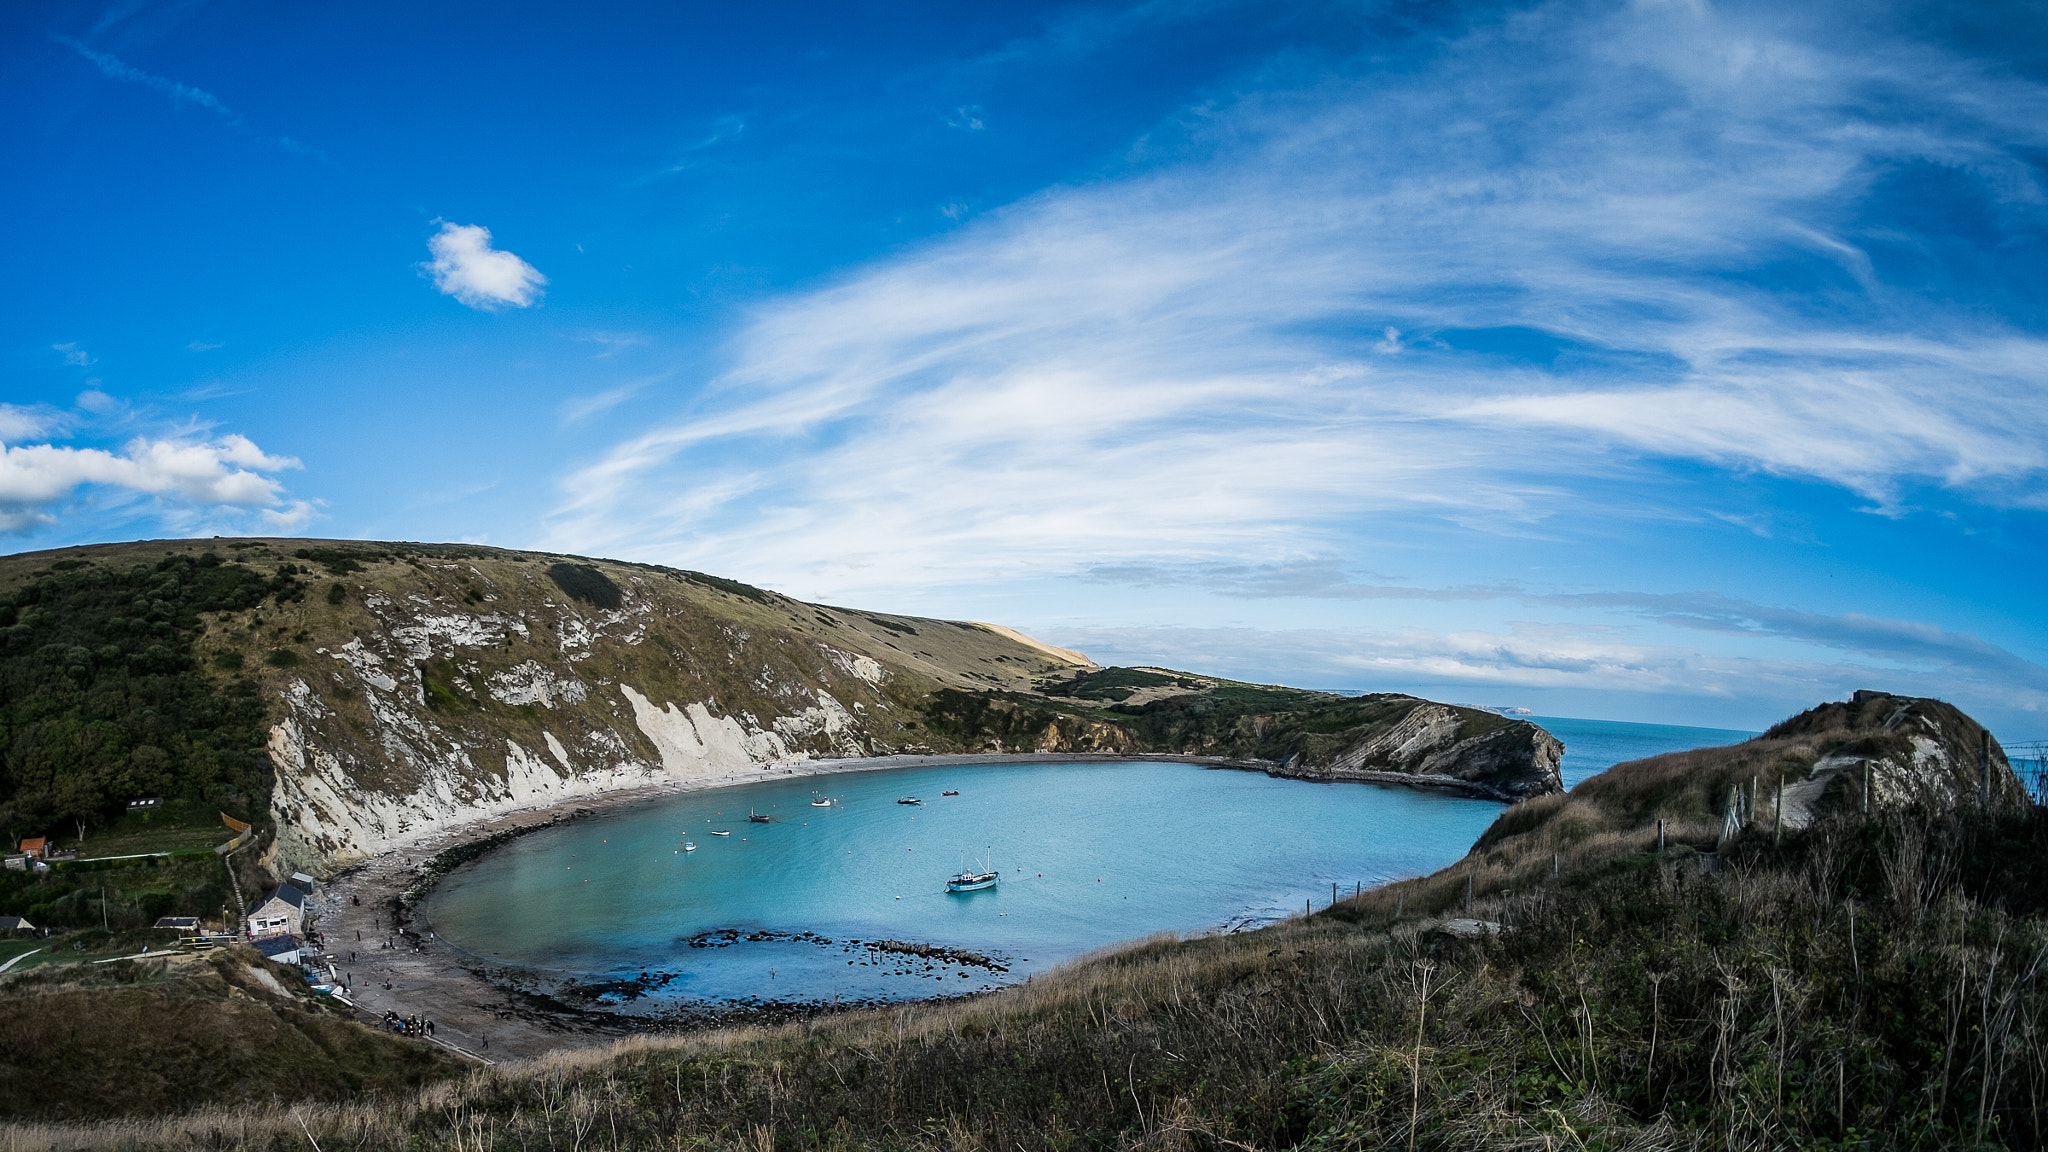 Photograph Fullworth Cove by Guy Swarbrick on 500px